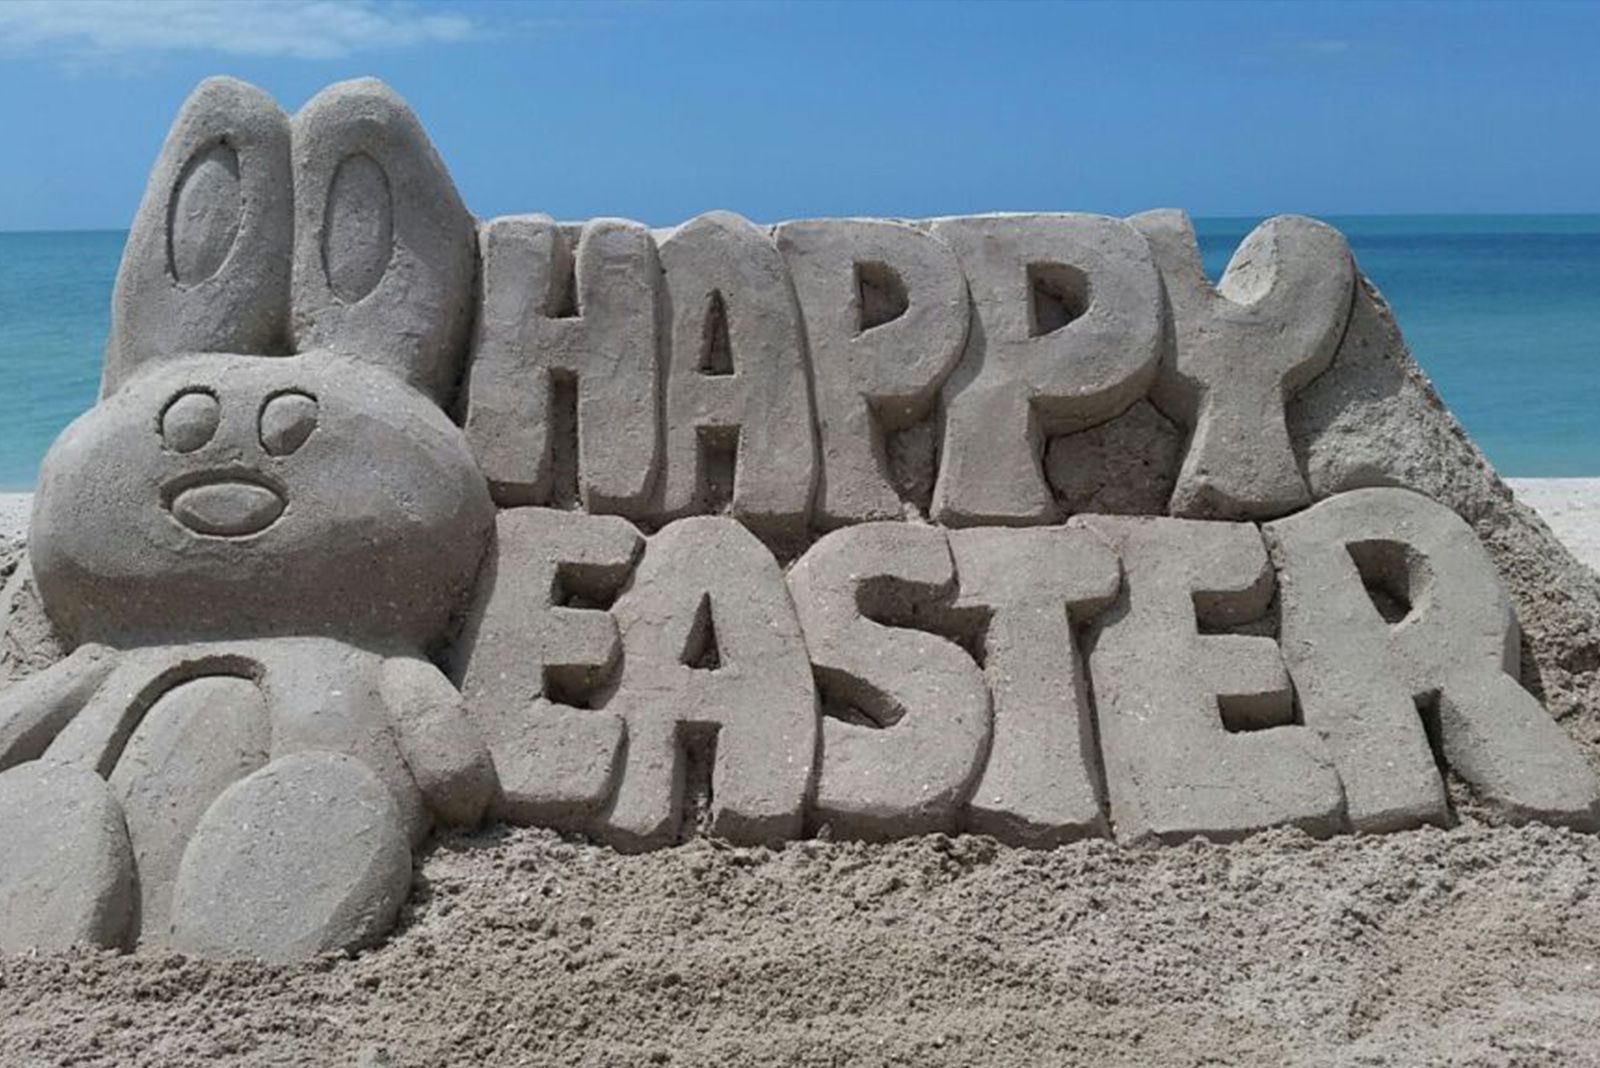 Sand sculpture of the words 'Happy Easter' with a bunny